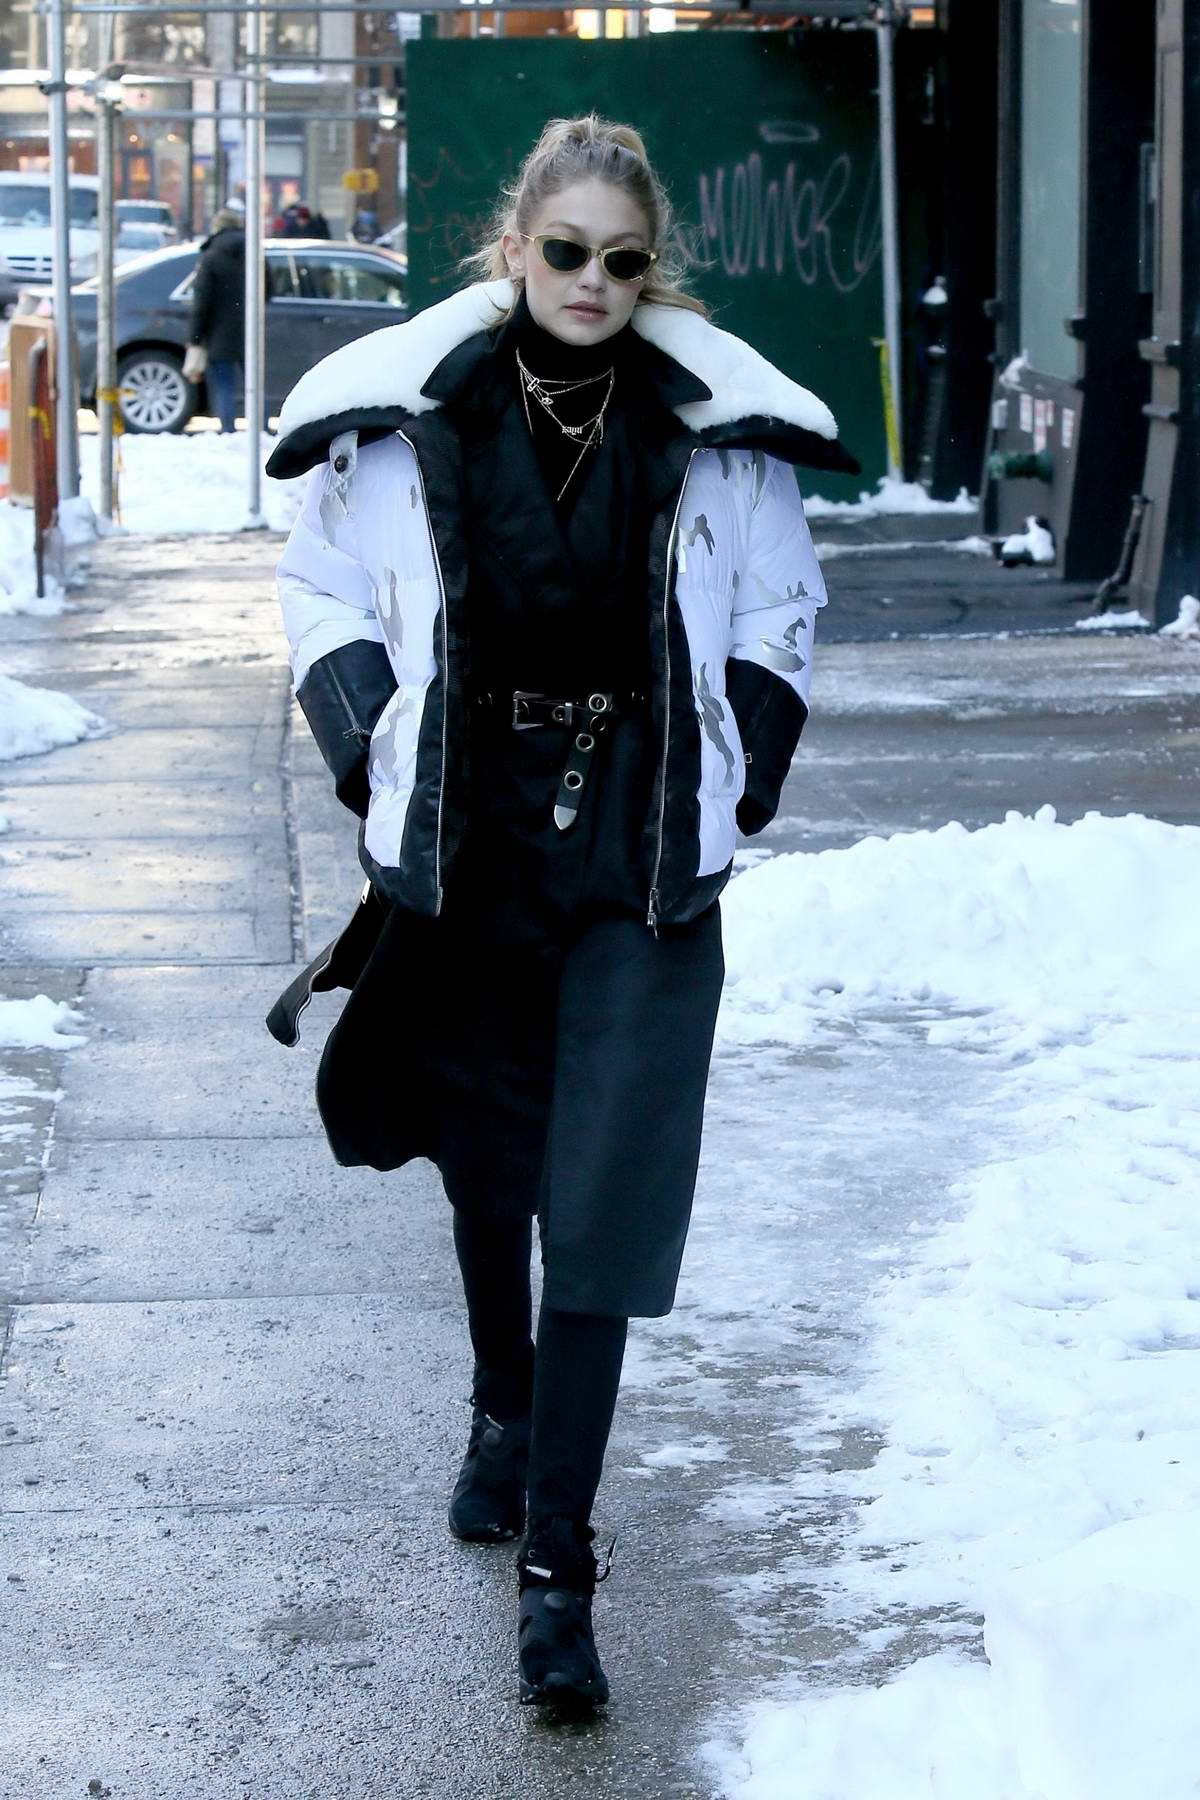 Gigi Hadid sports a black and white look as she heads out for lunch with a friend in Soho, New York City